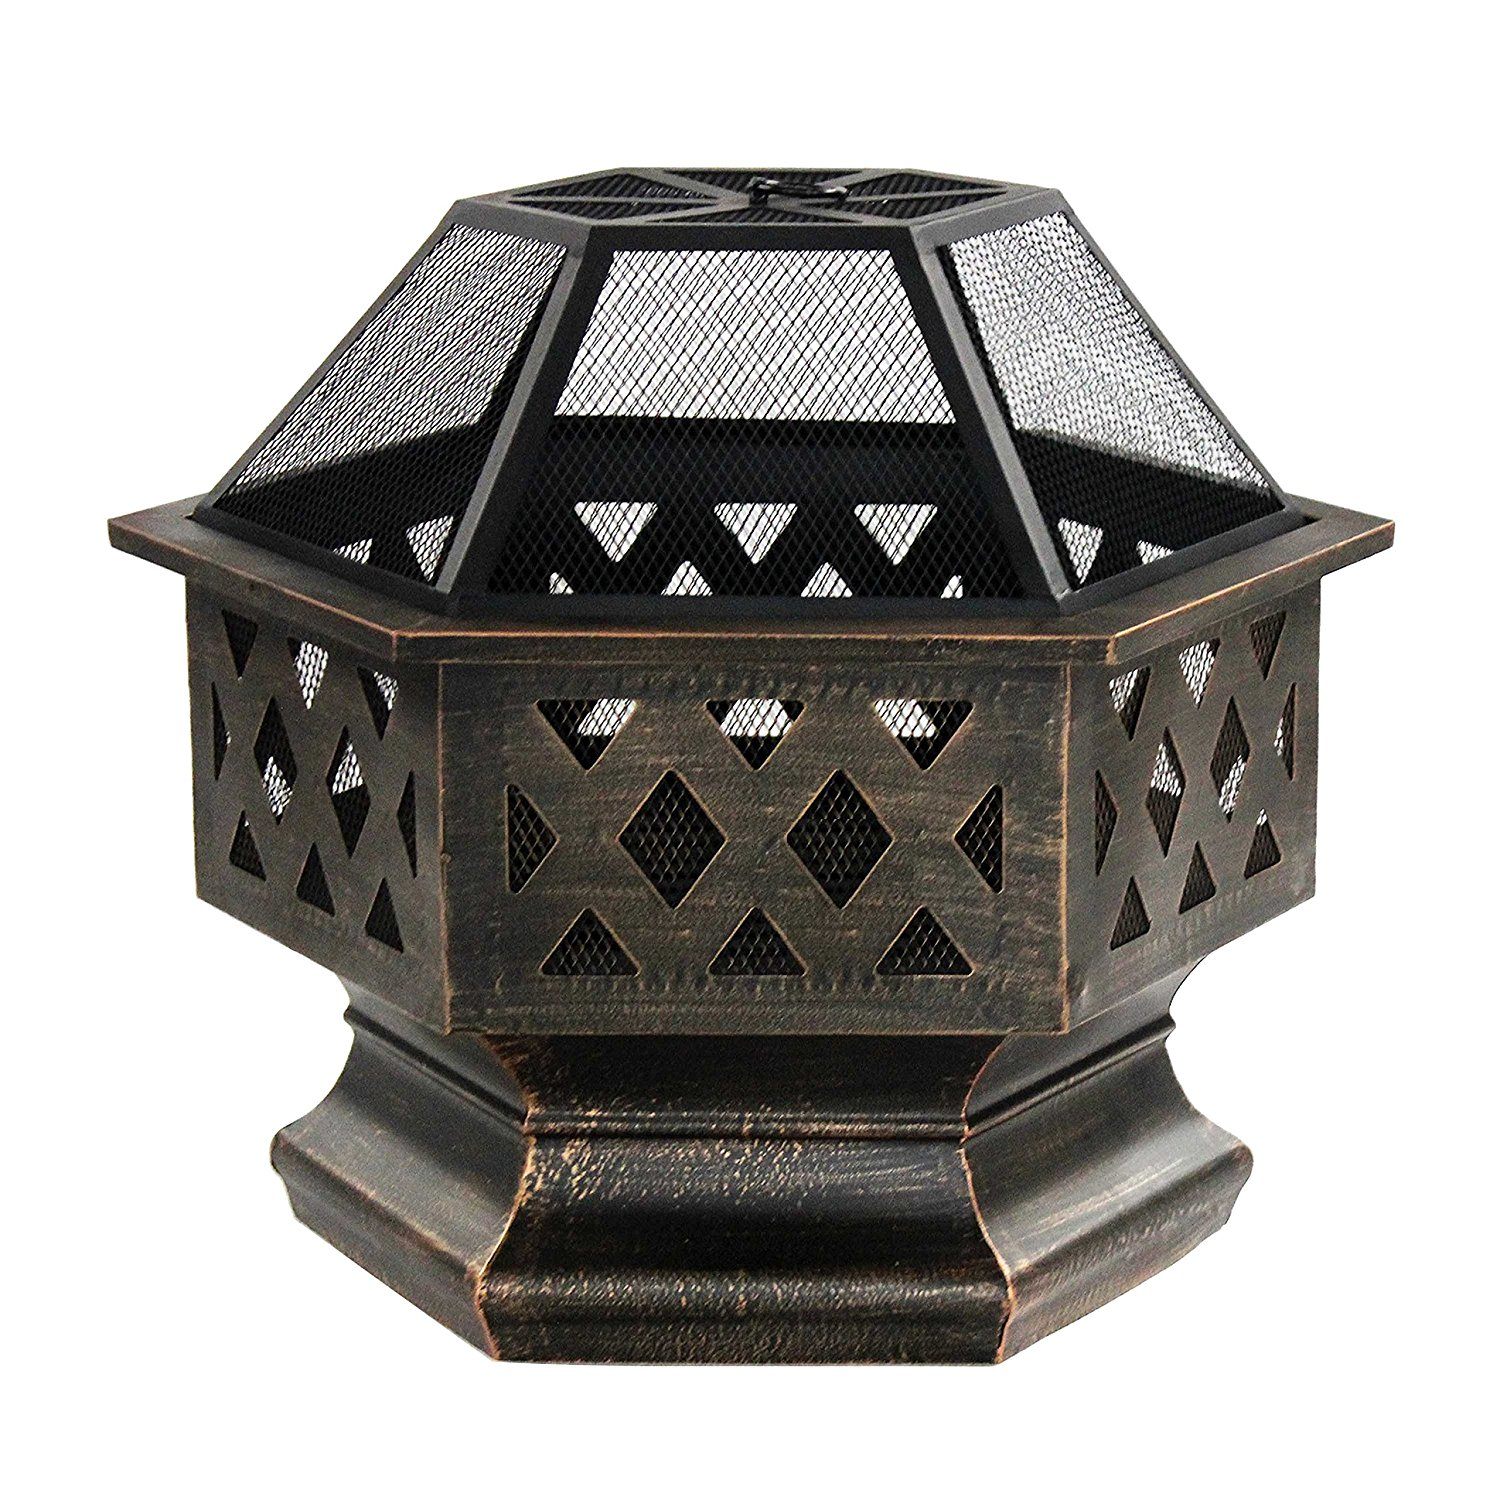 FP004 Hex Shaped Steel Backyard Patio Fire Pit Bowl - Distressed Bronze - 24 Inc